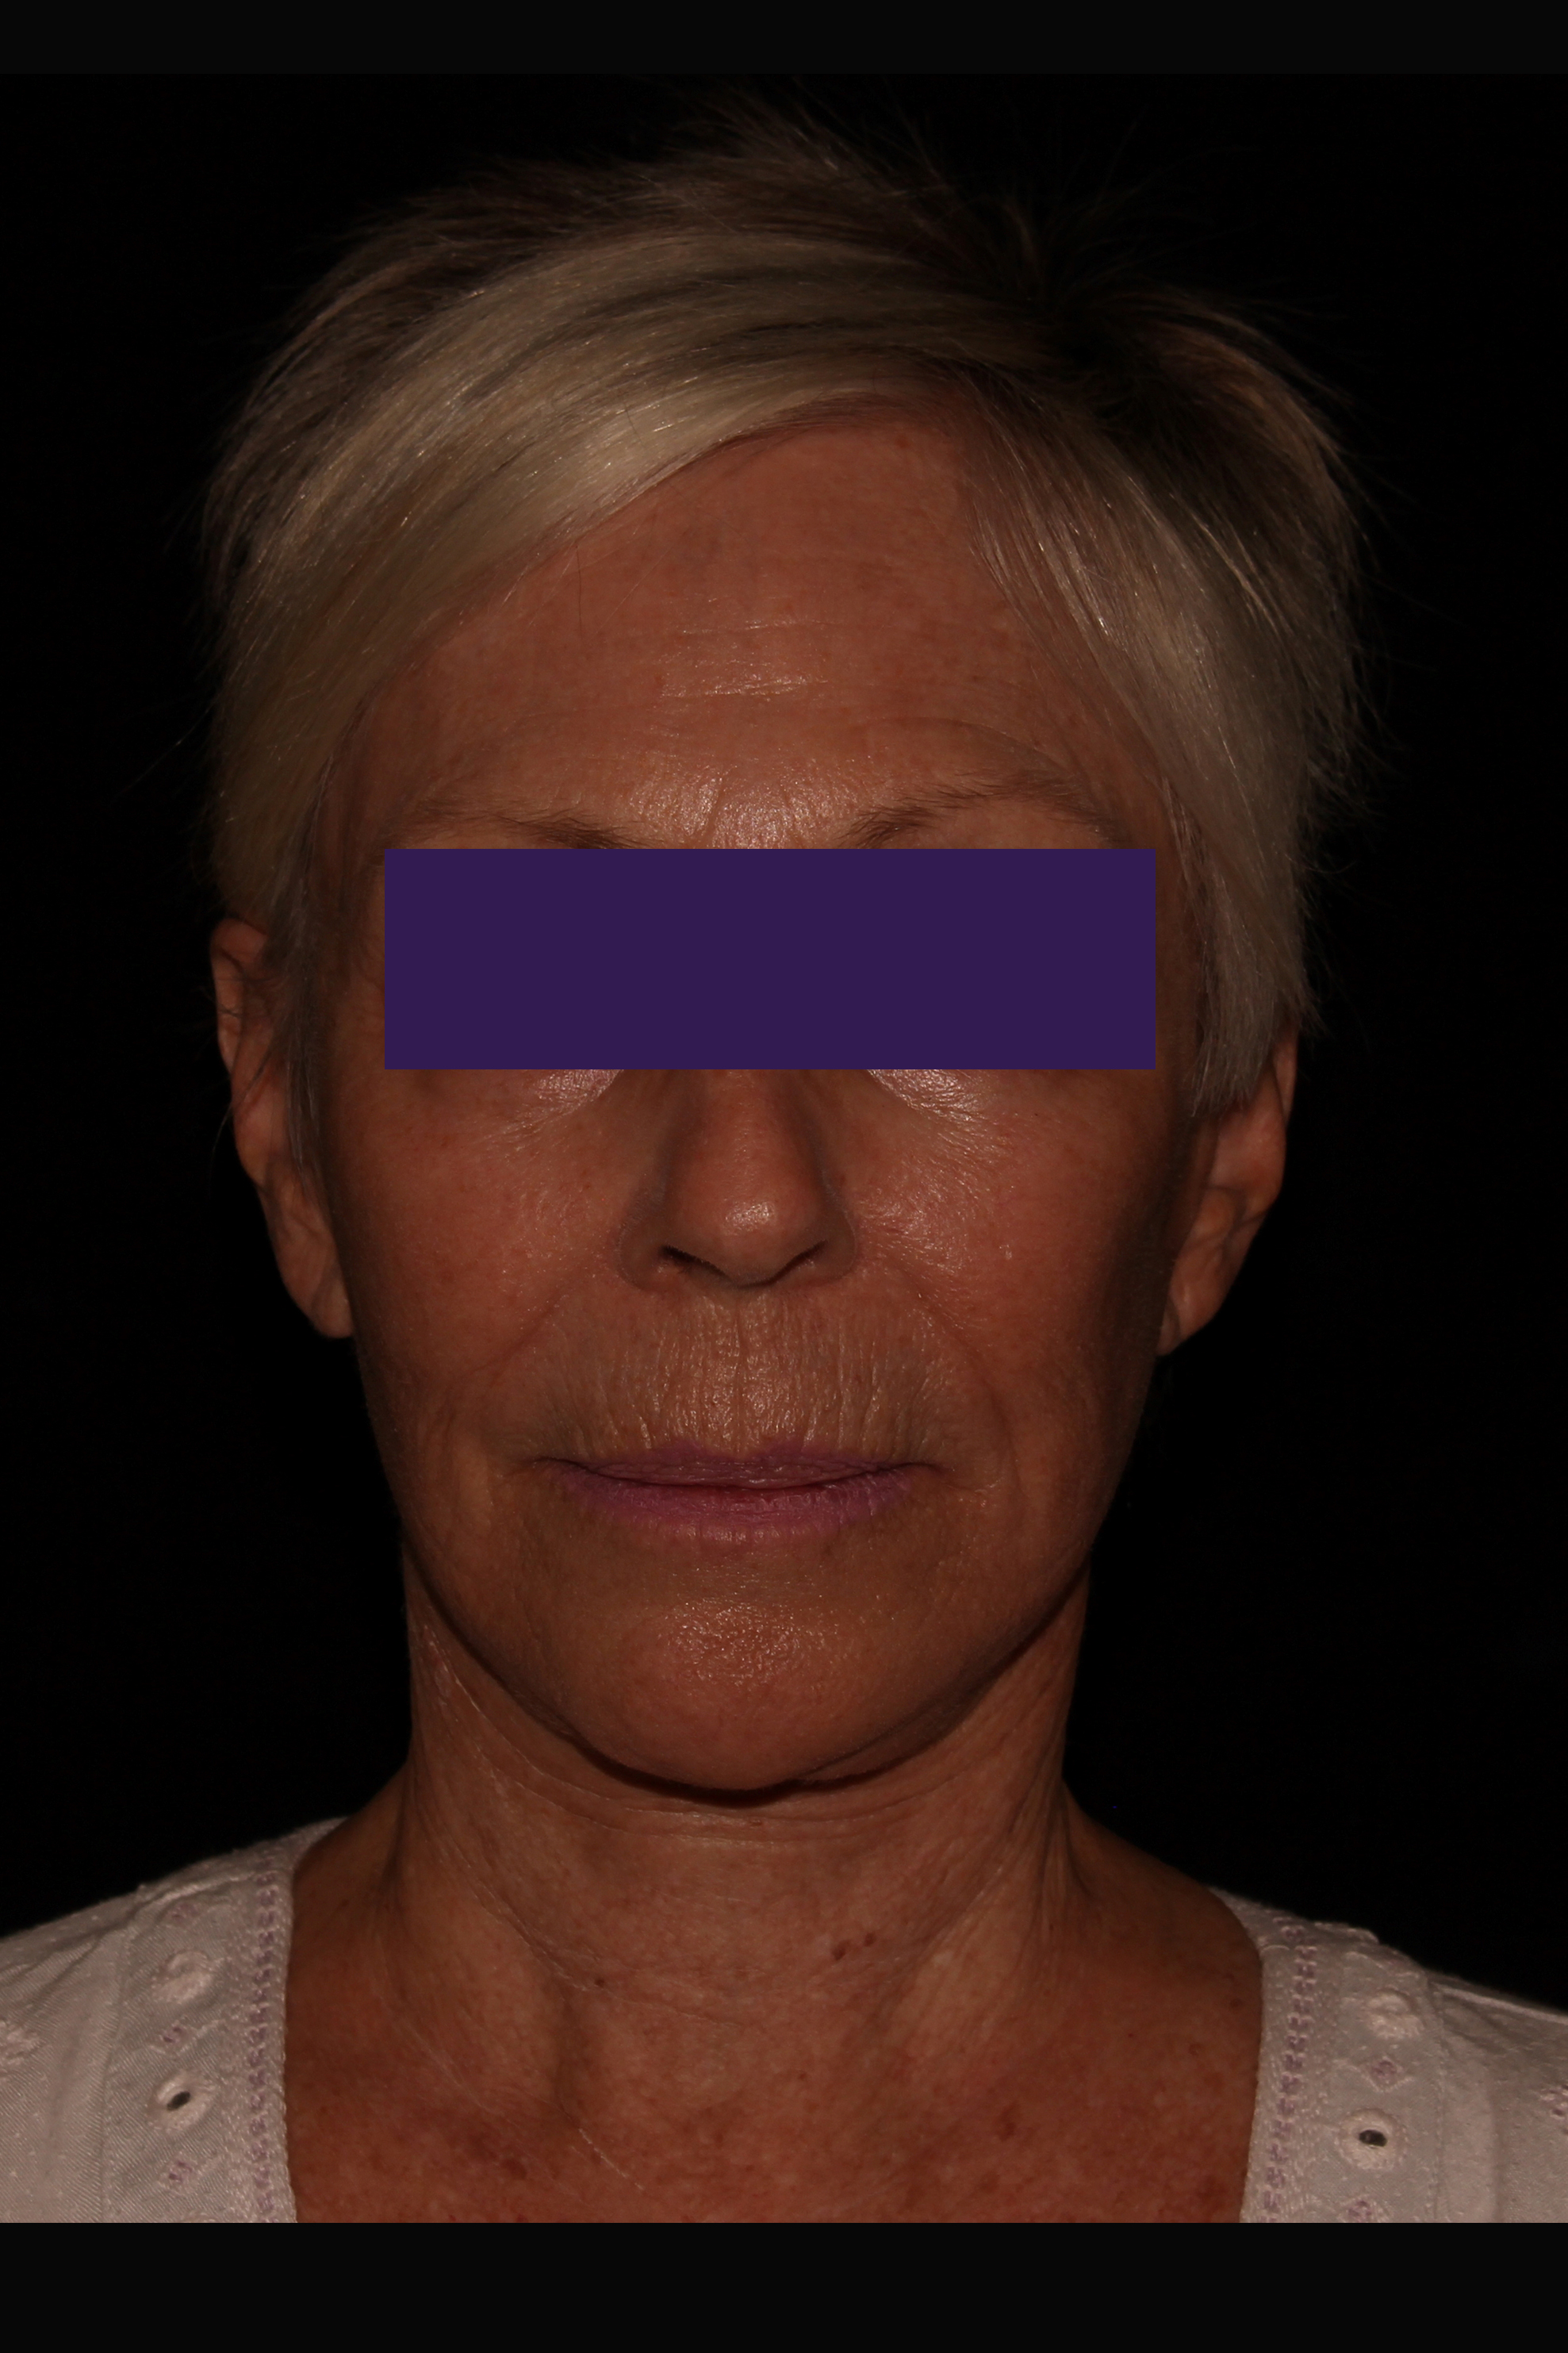 After Facelift - Facelift & Necklift